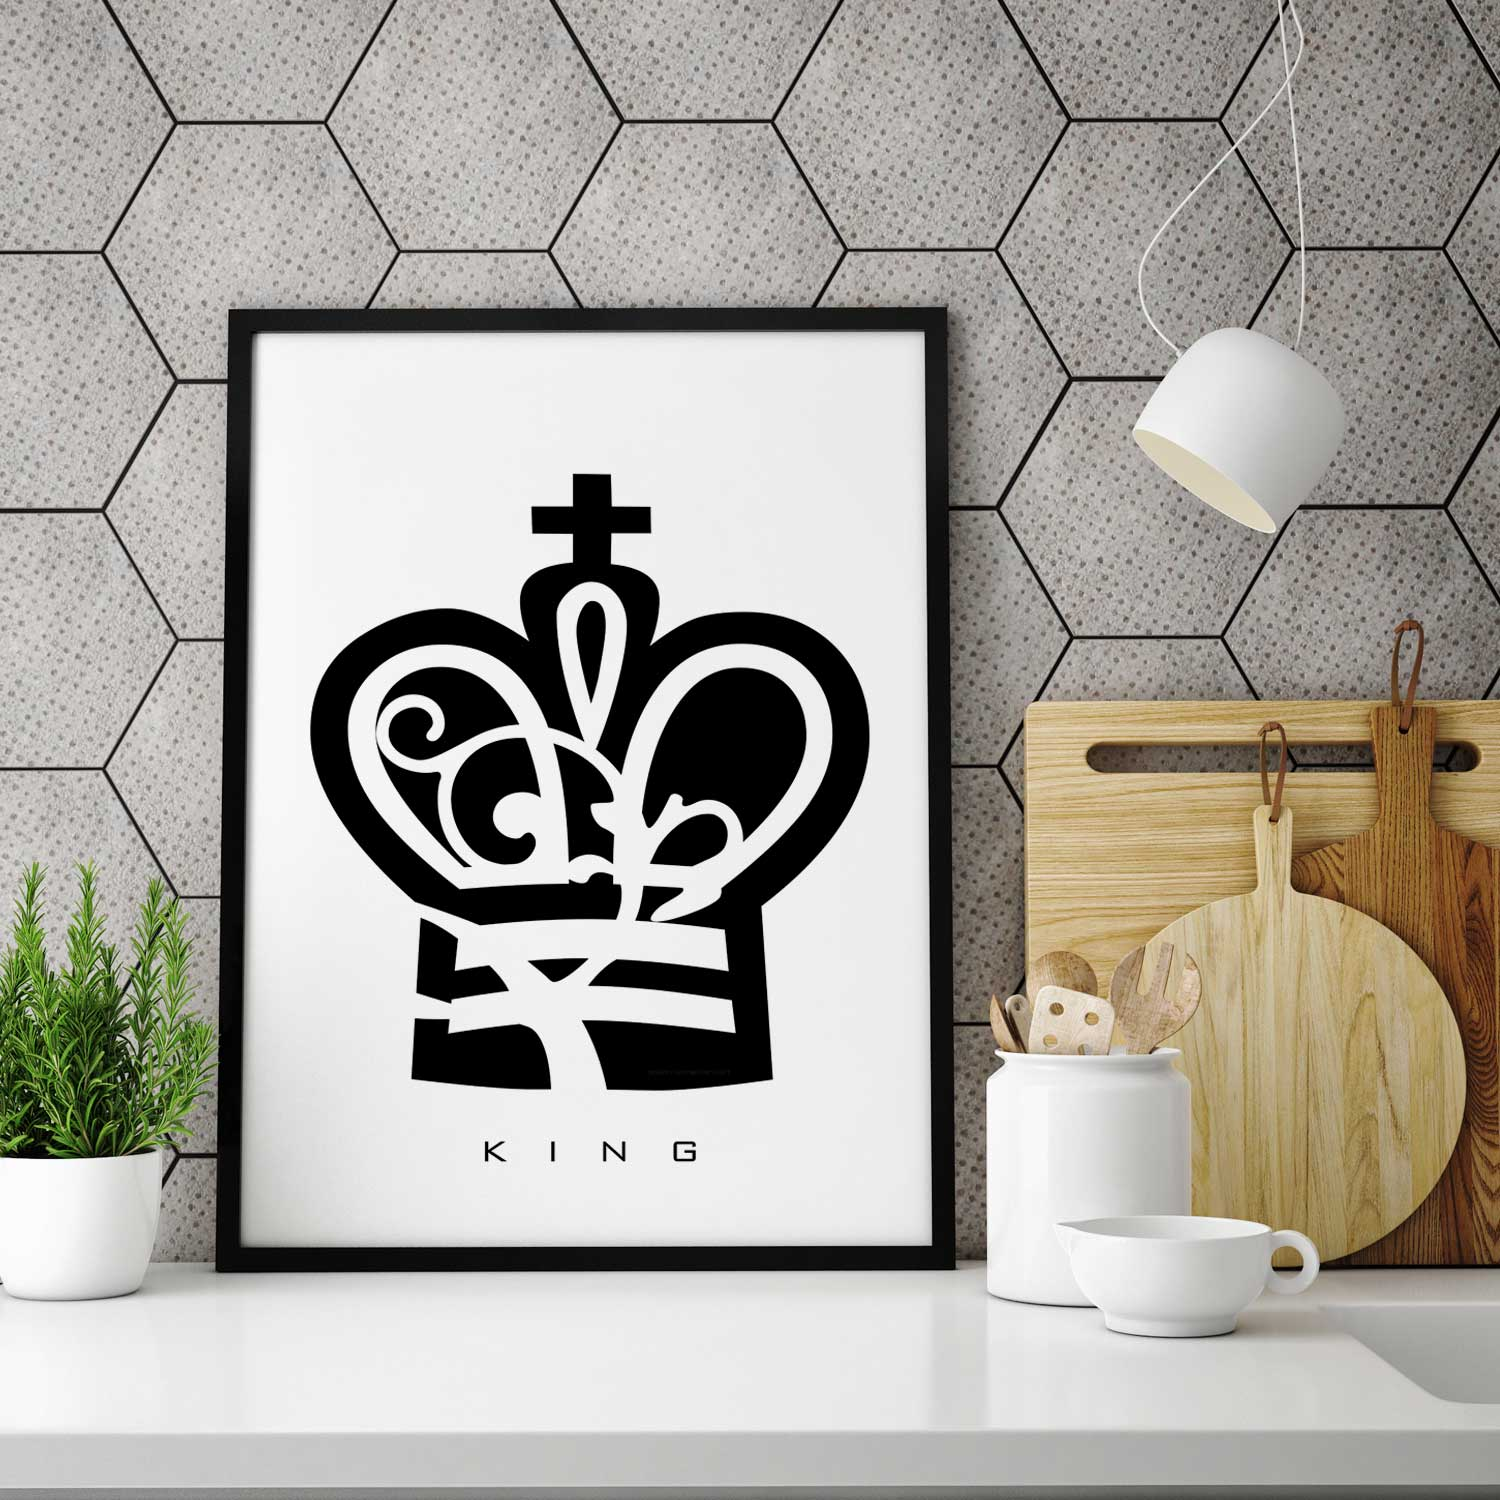 KING - Chess Piece - Wall Decor